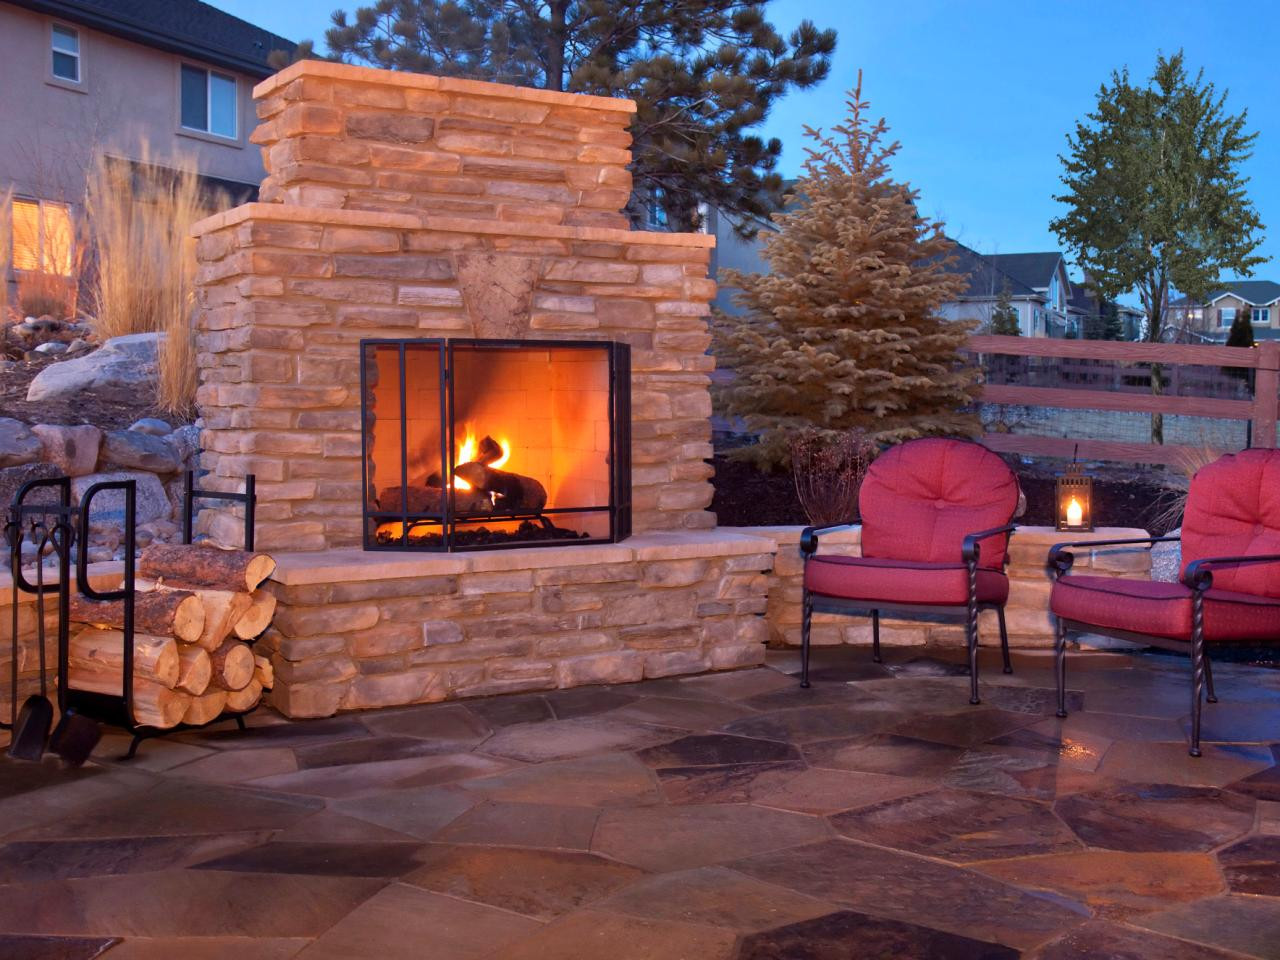 Outdoor Fireplace Design How to Plan for Building An Outdoor Fireplace